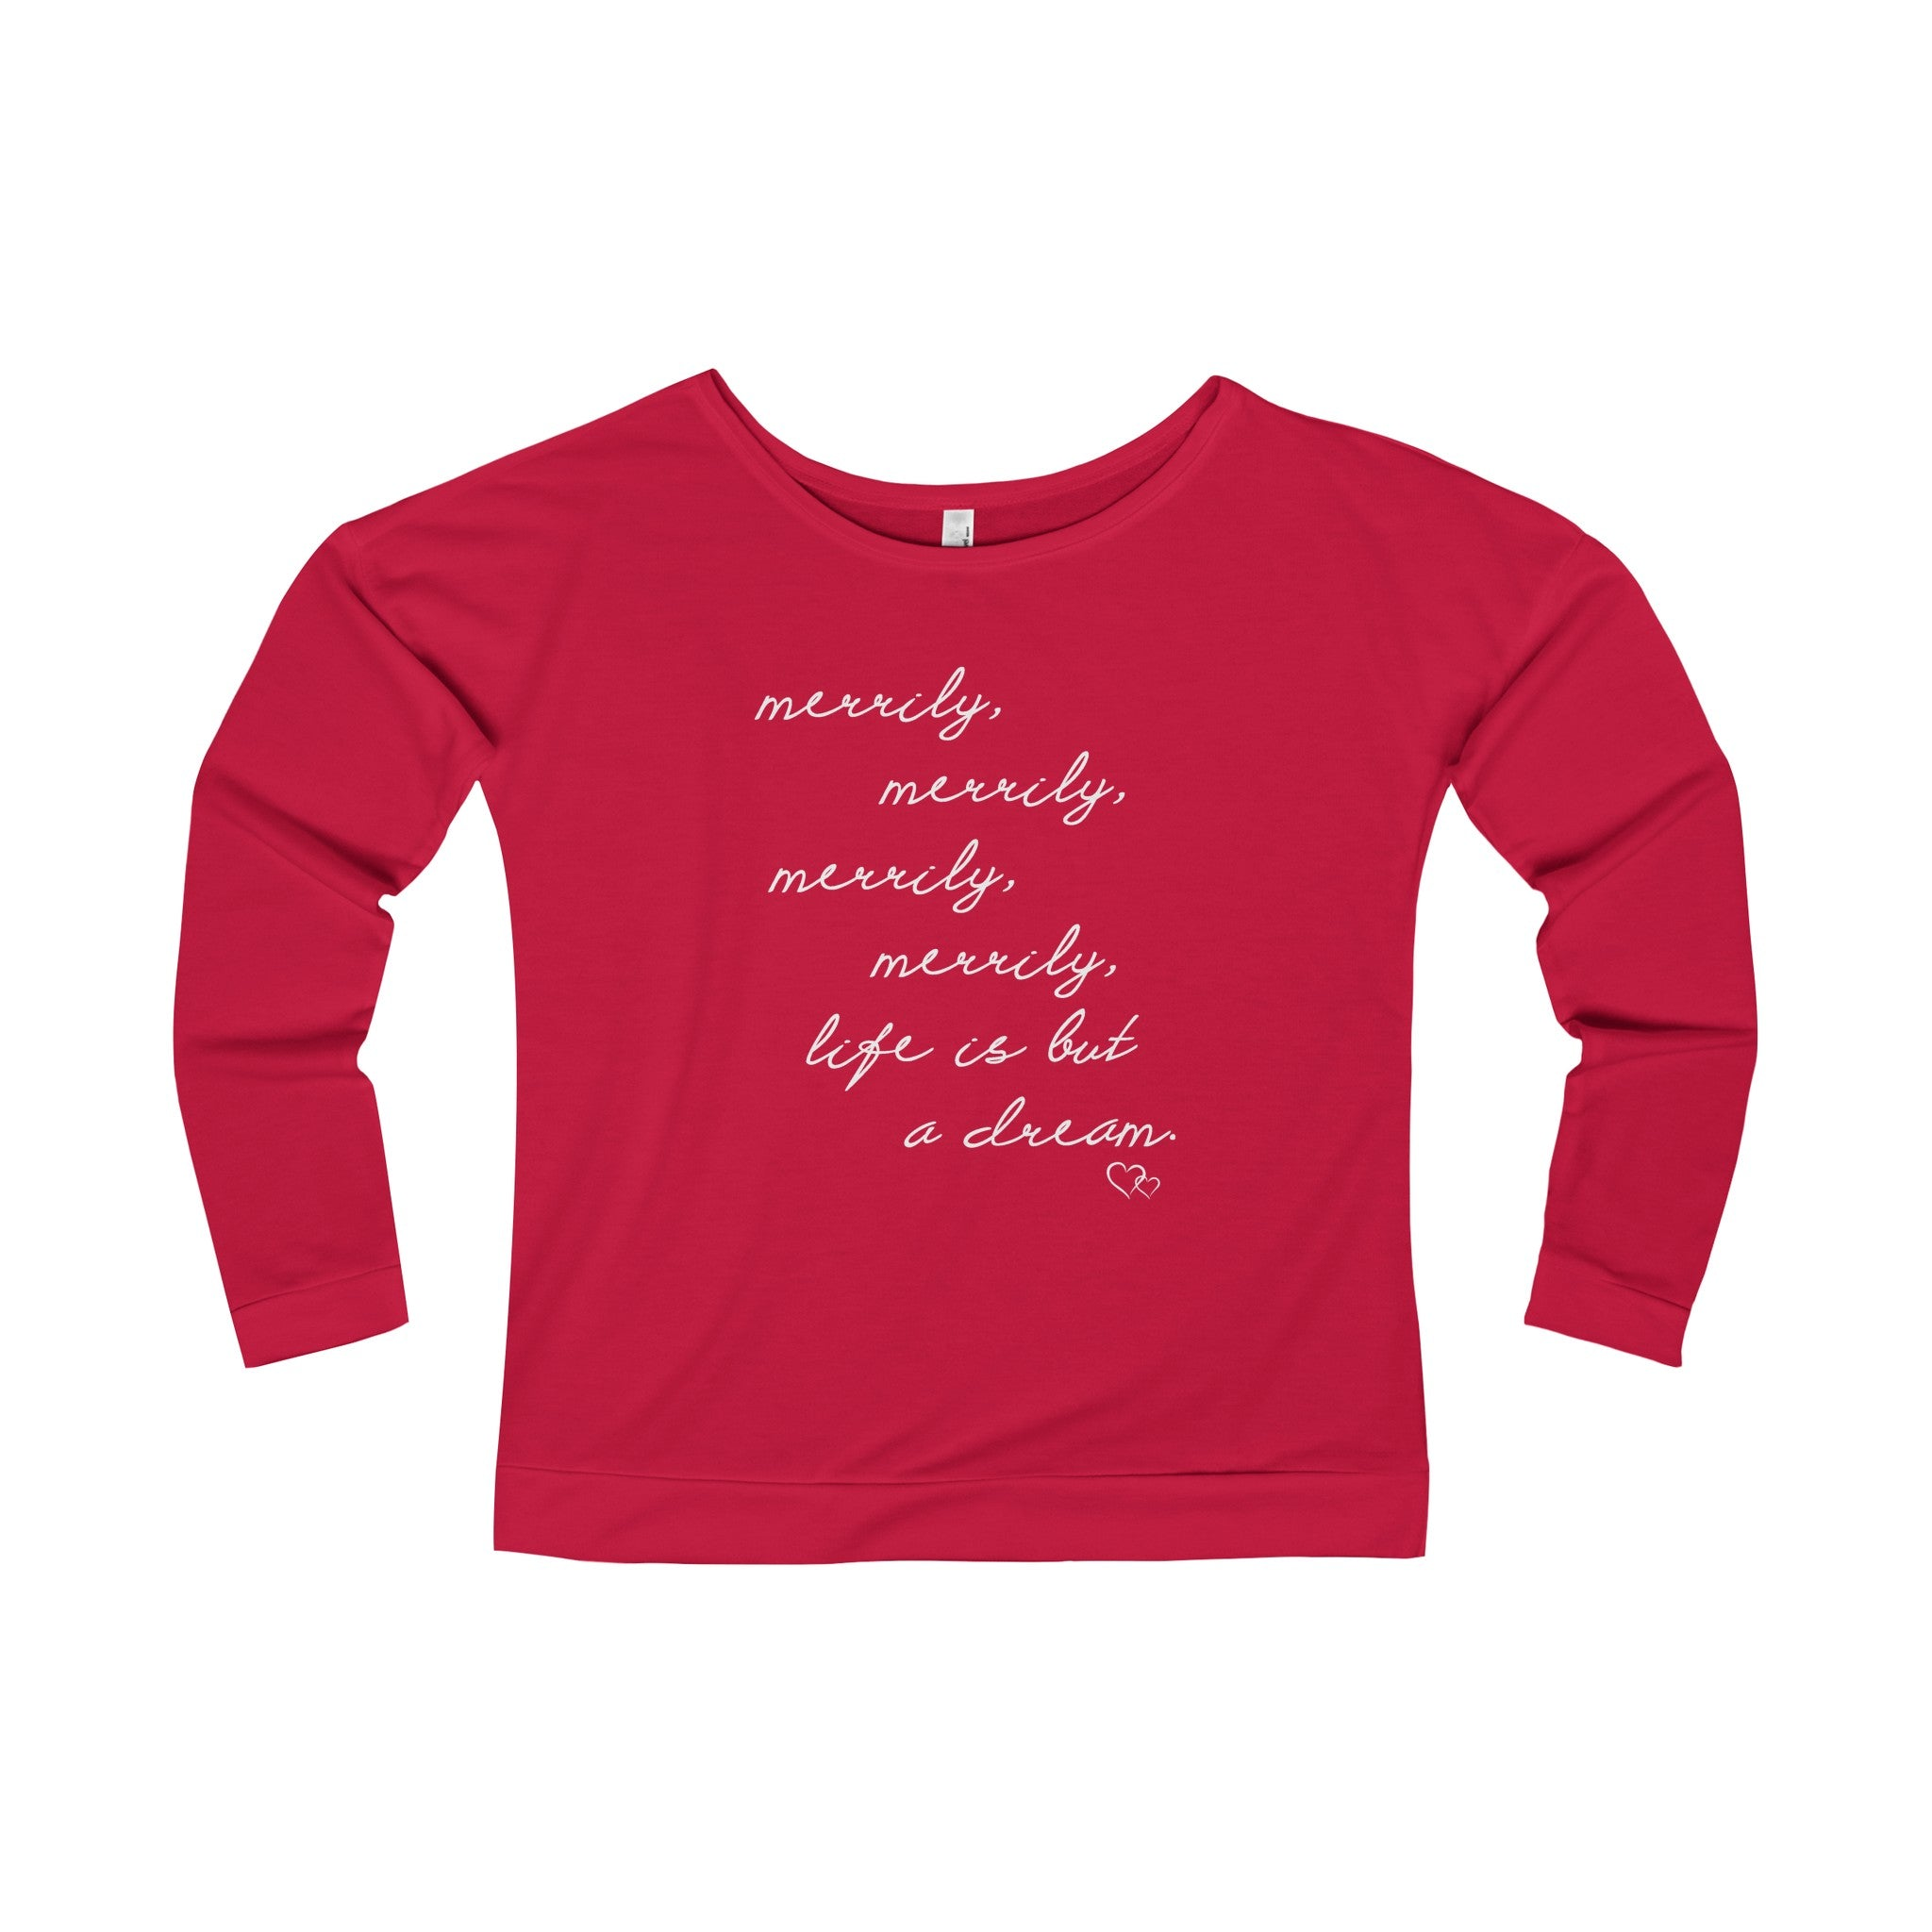 MERRILY, MERRILY - Long Sleeve Scoop Terry T